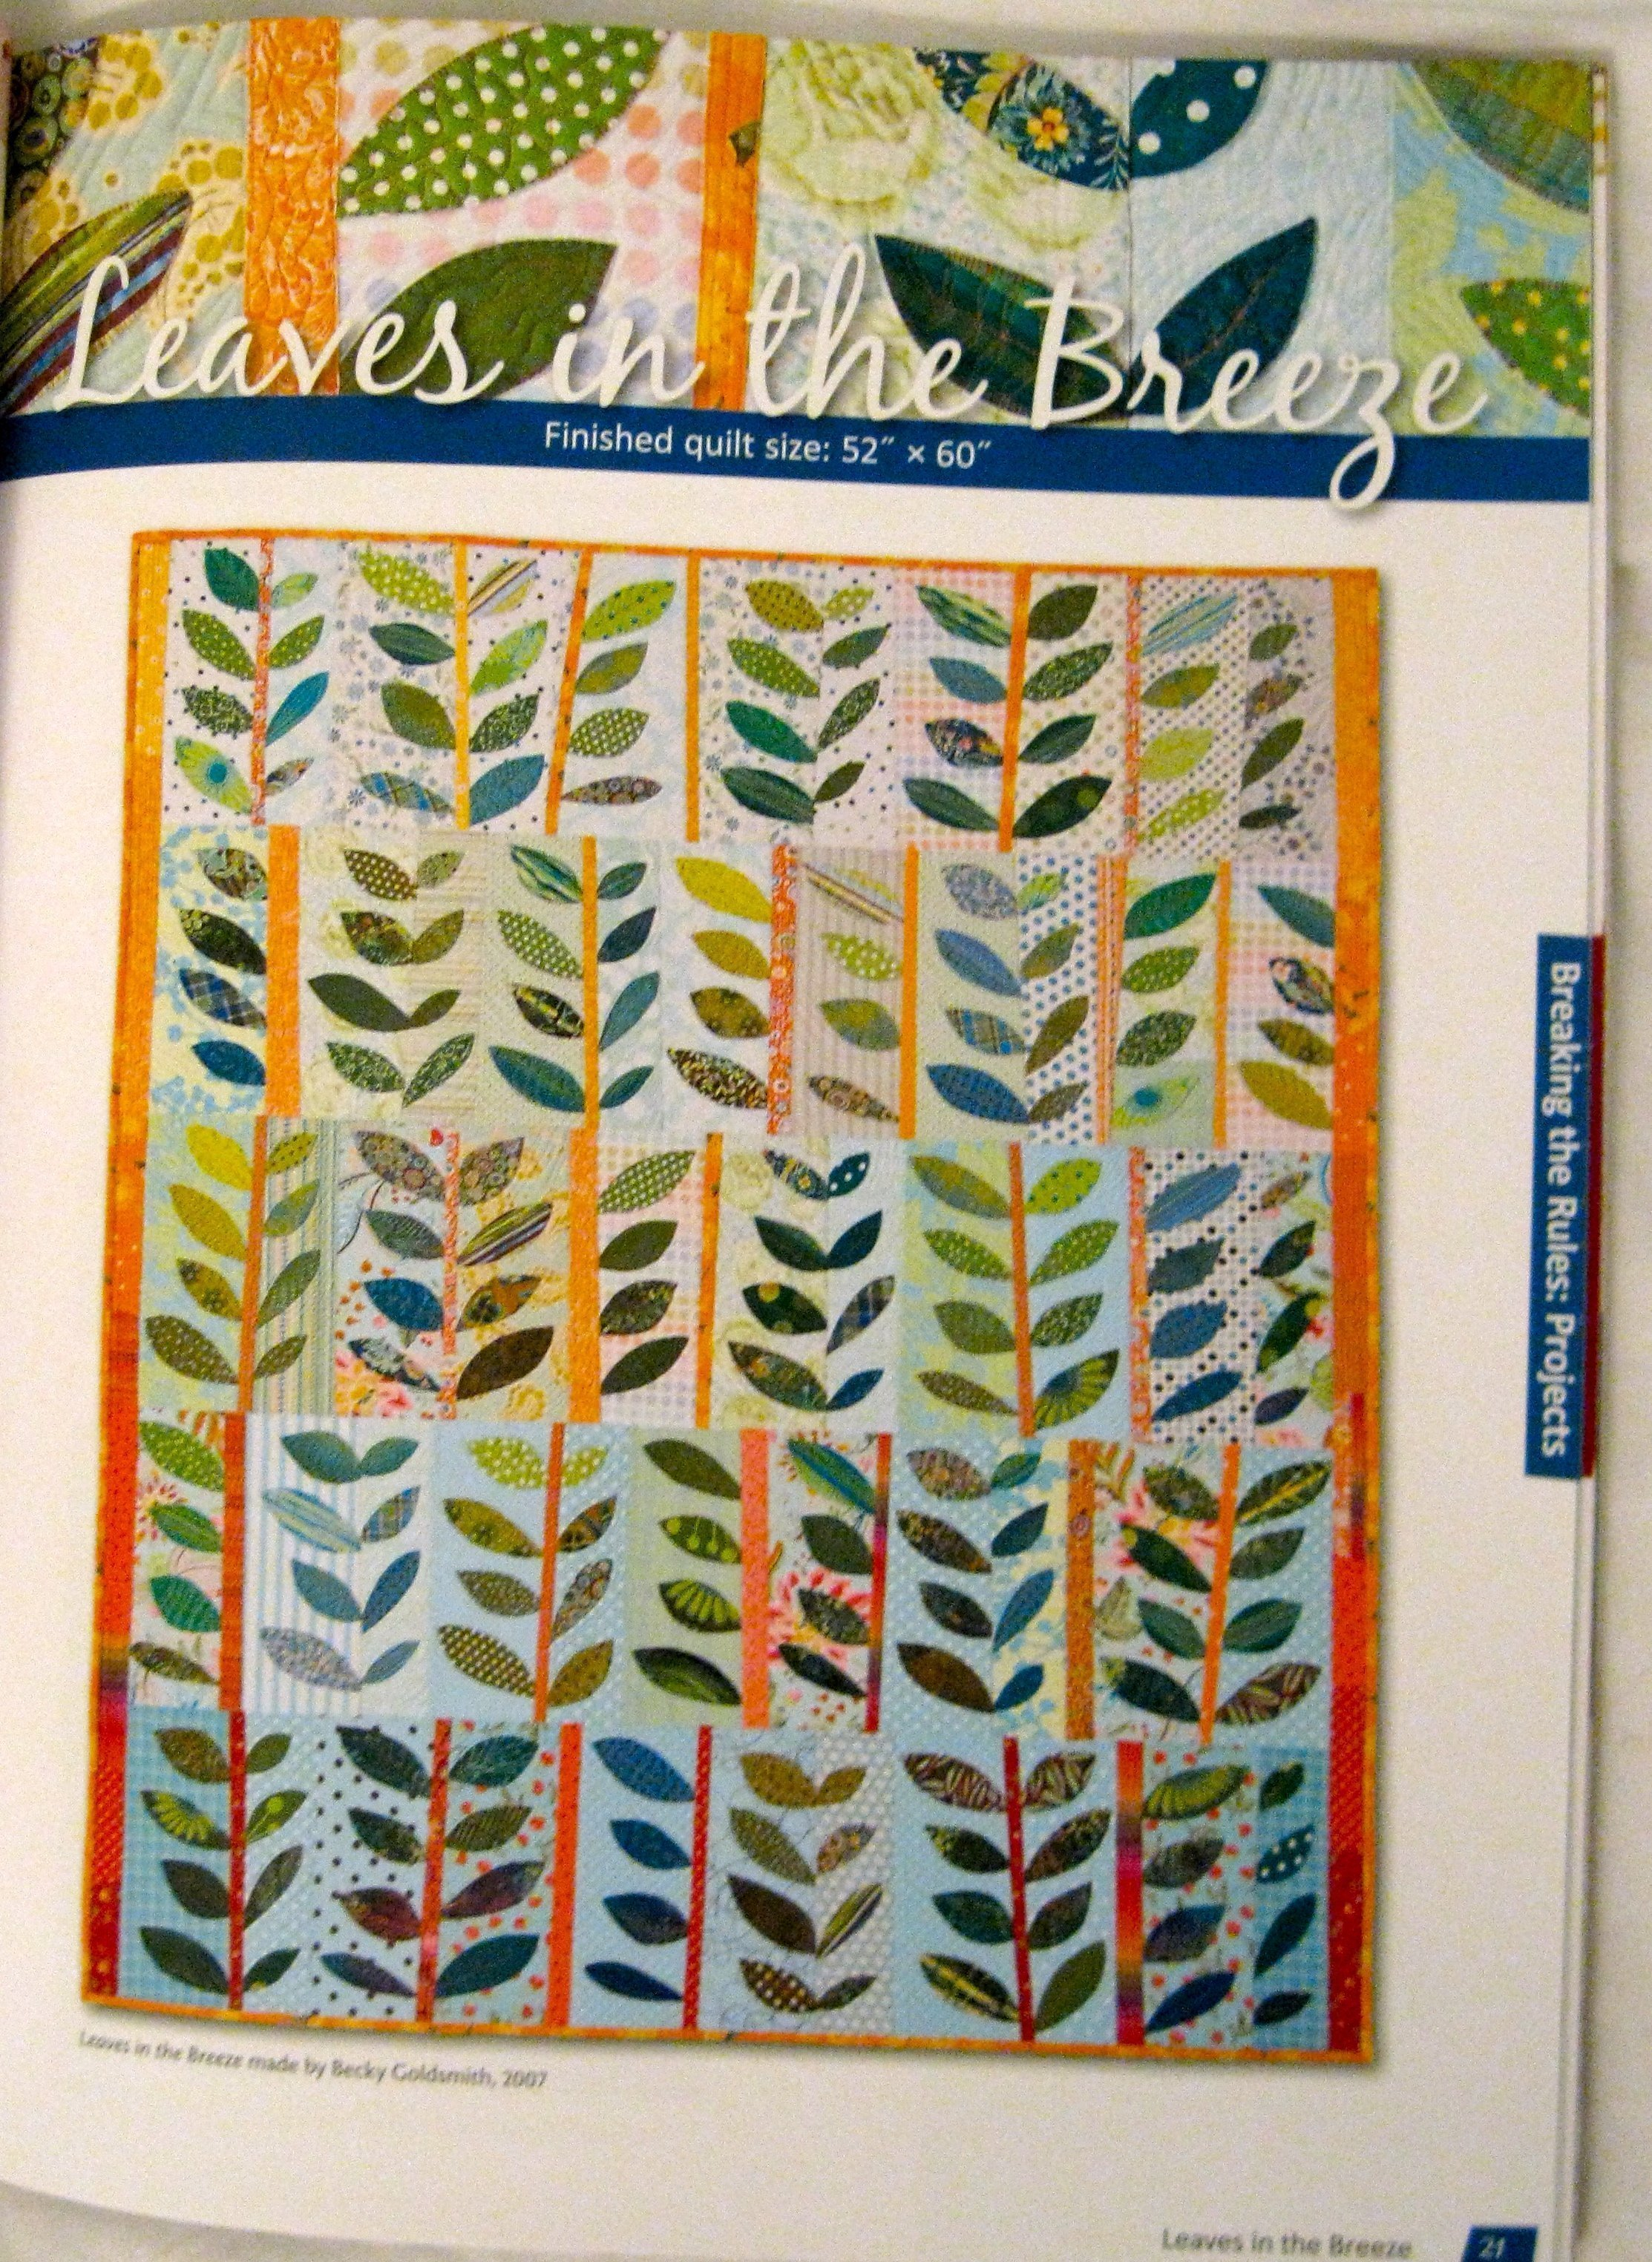 Leaves in the Wind quilt page from the book